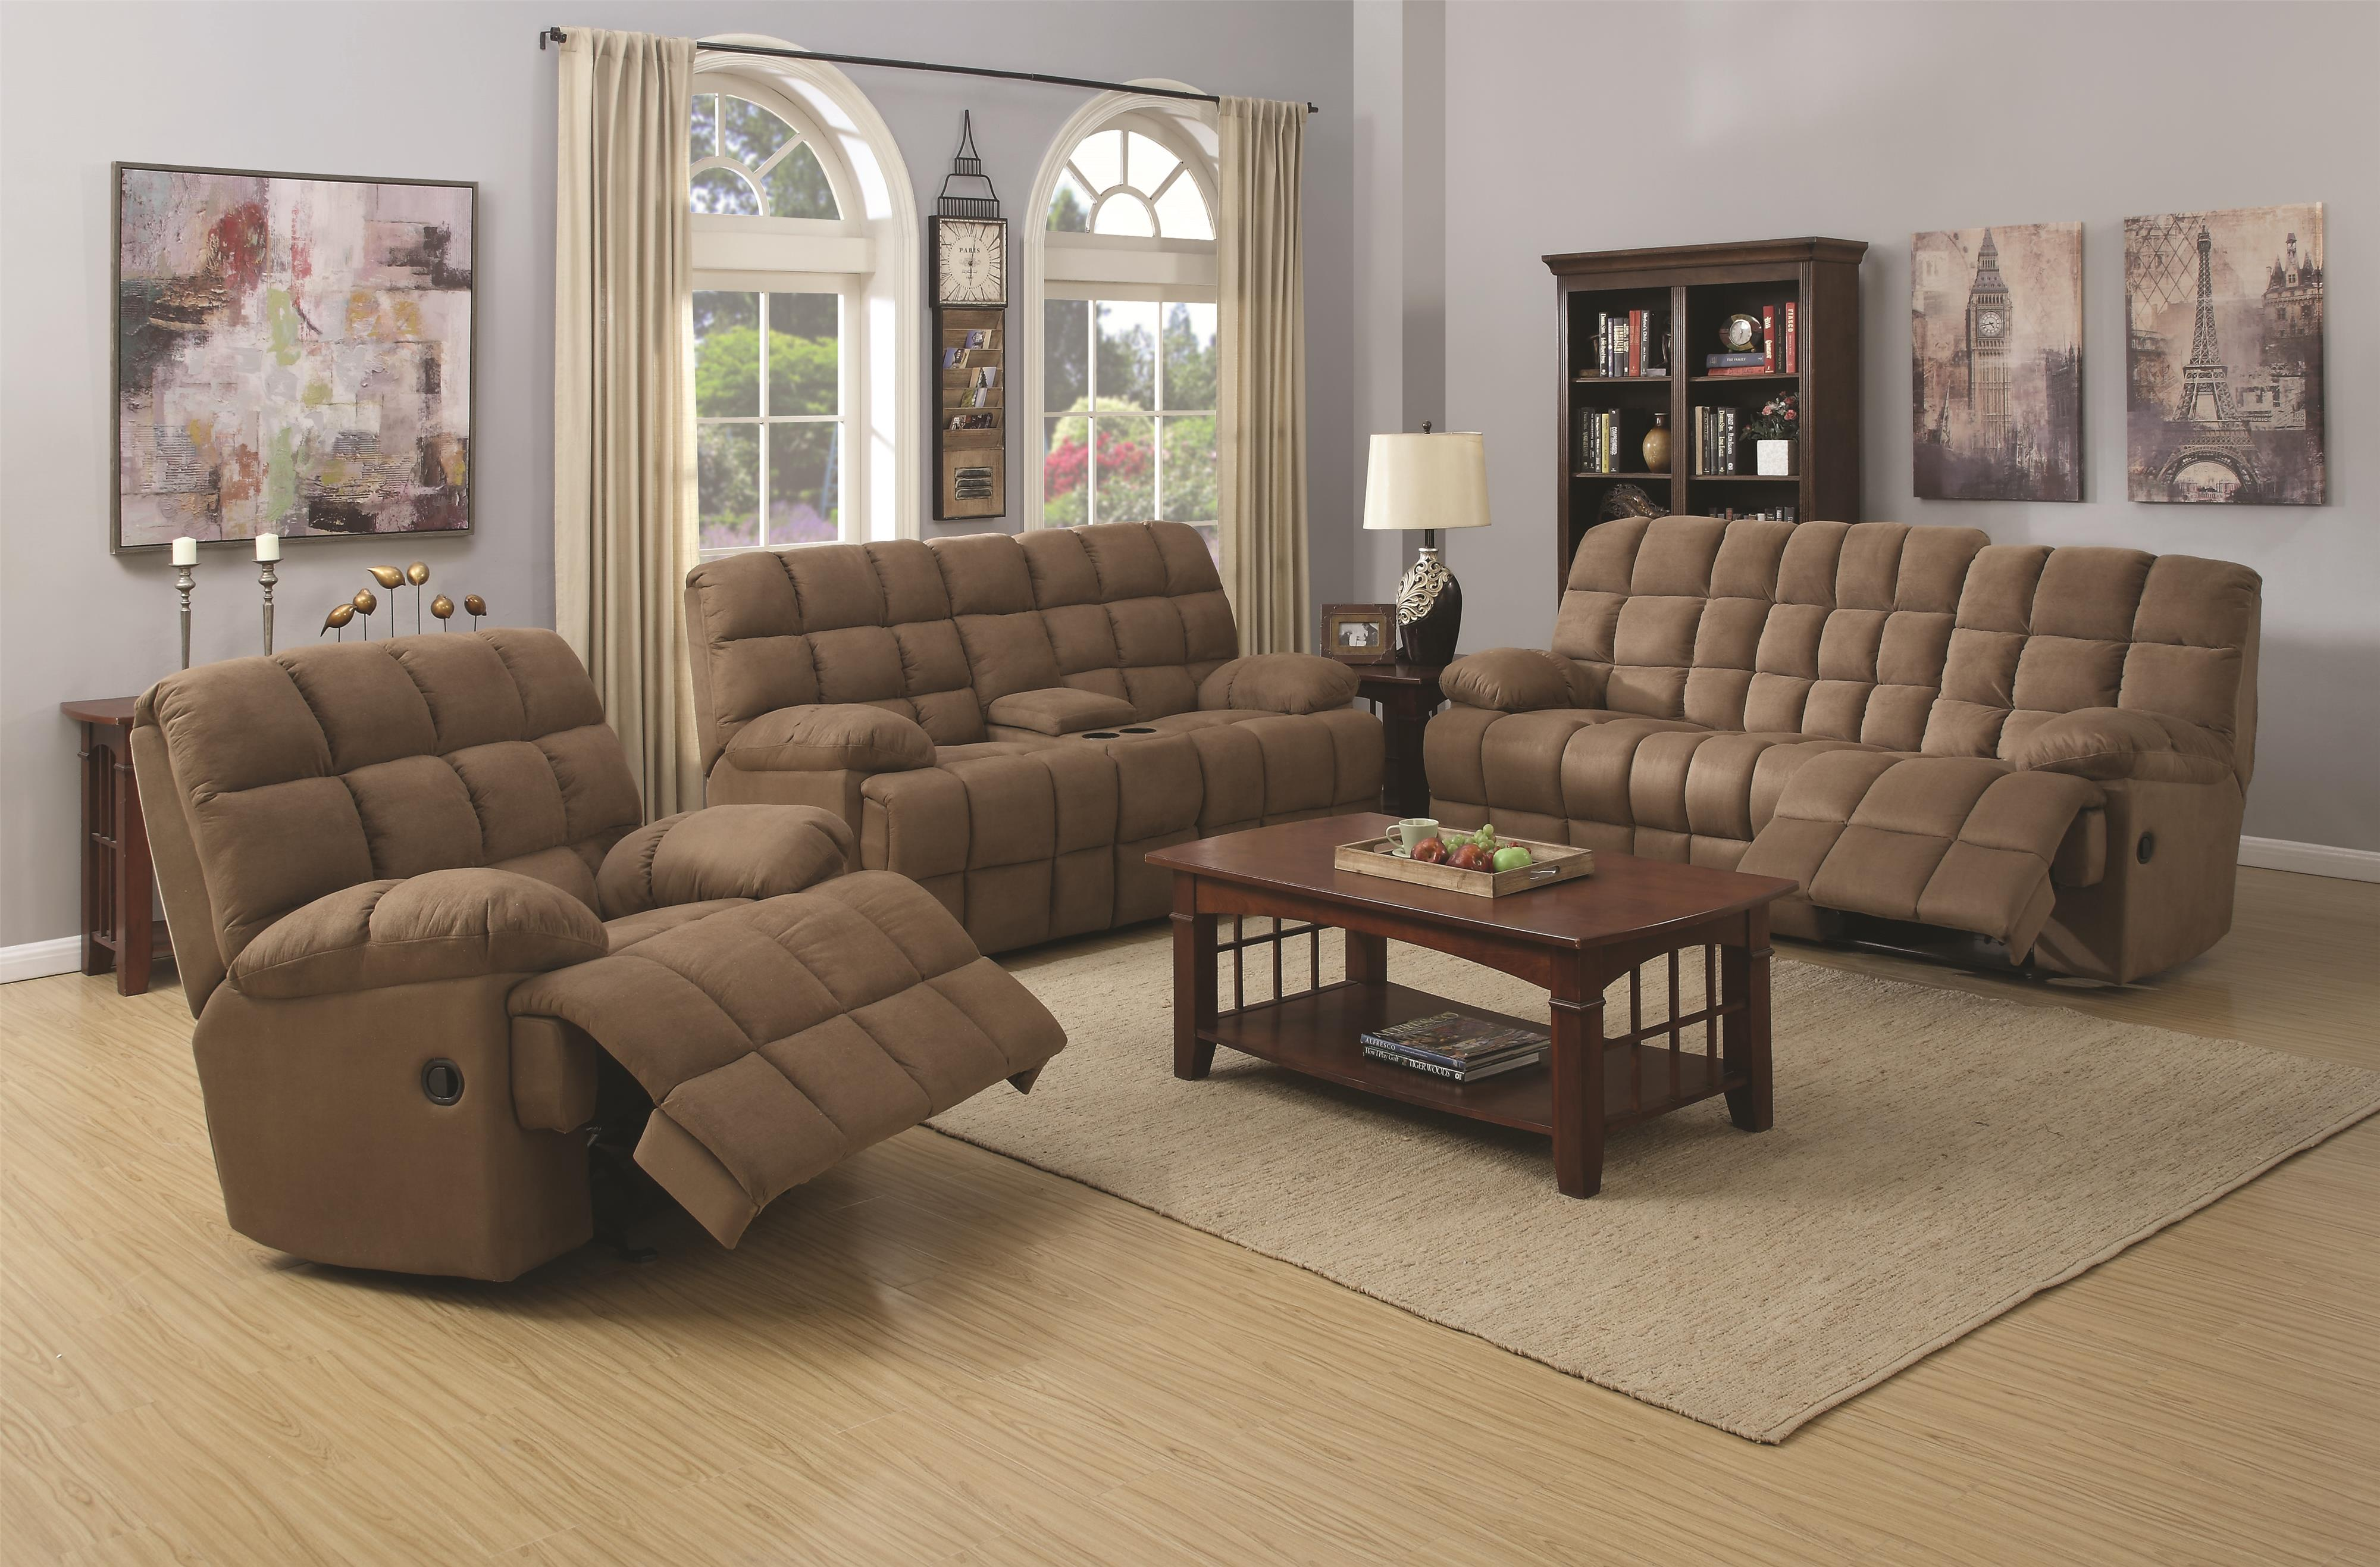 Coaster Pickett Reclining Living Room Group - Item Number: 60194 Living Room Group 1